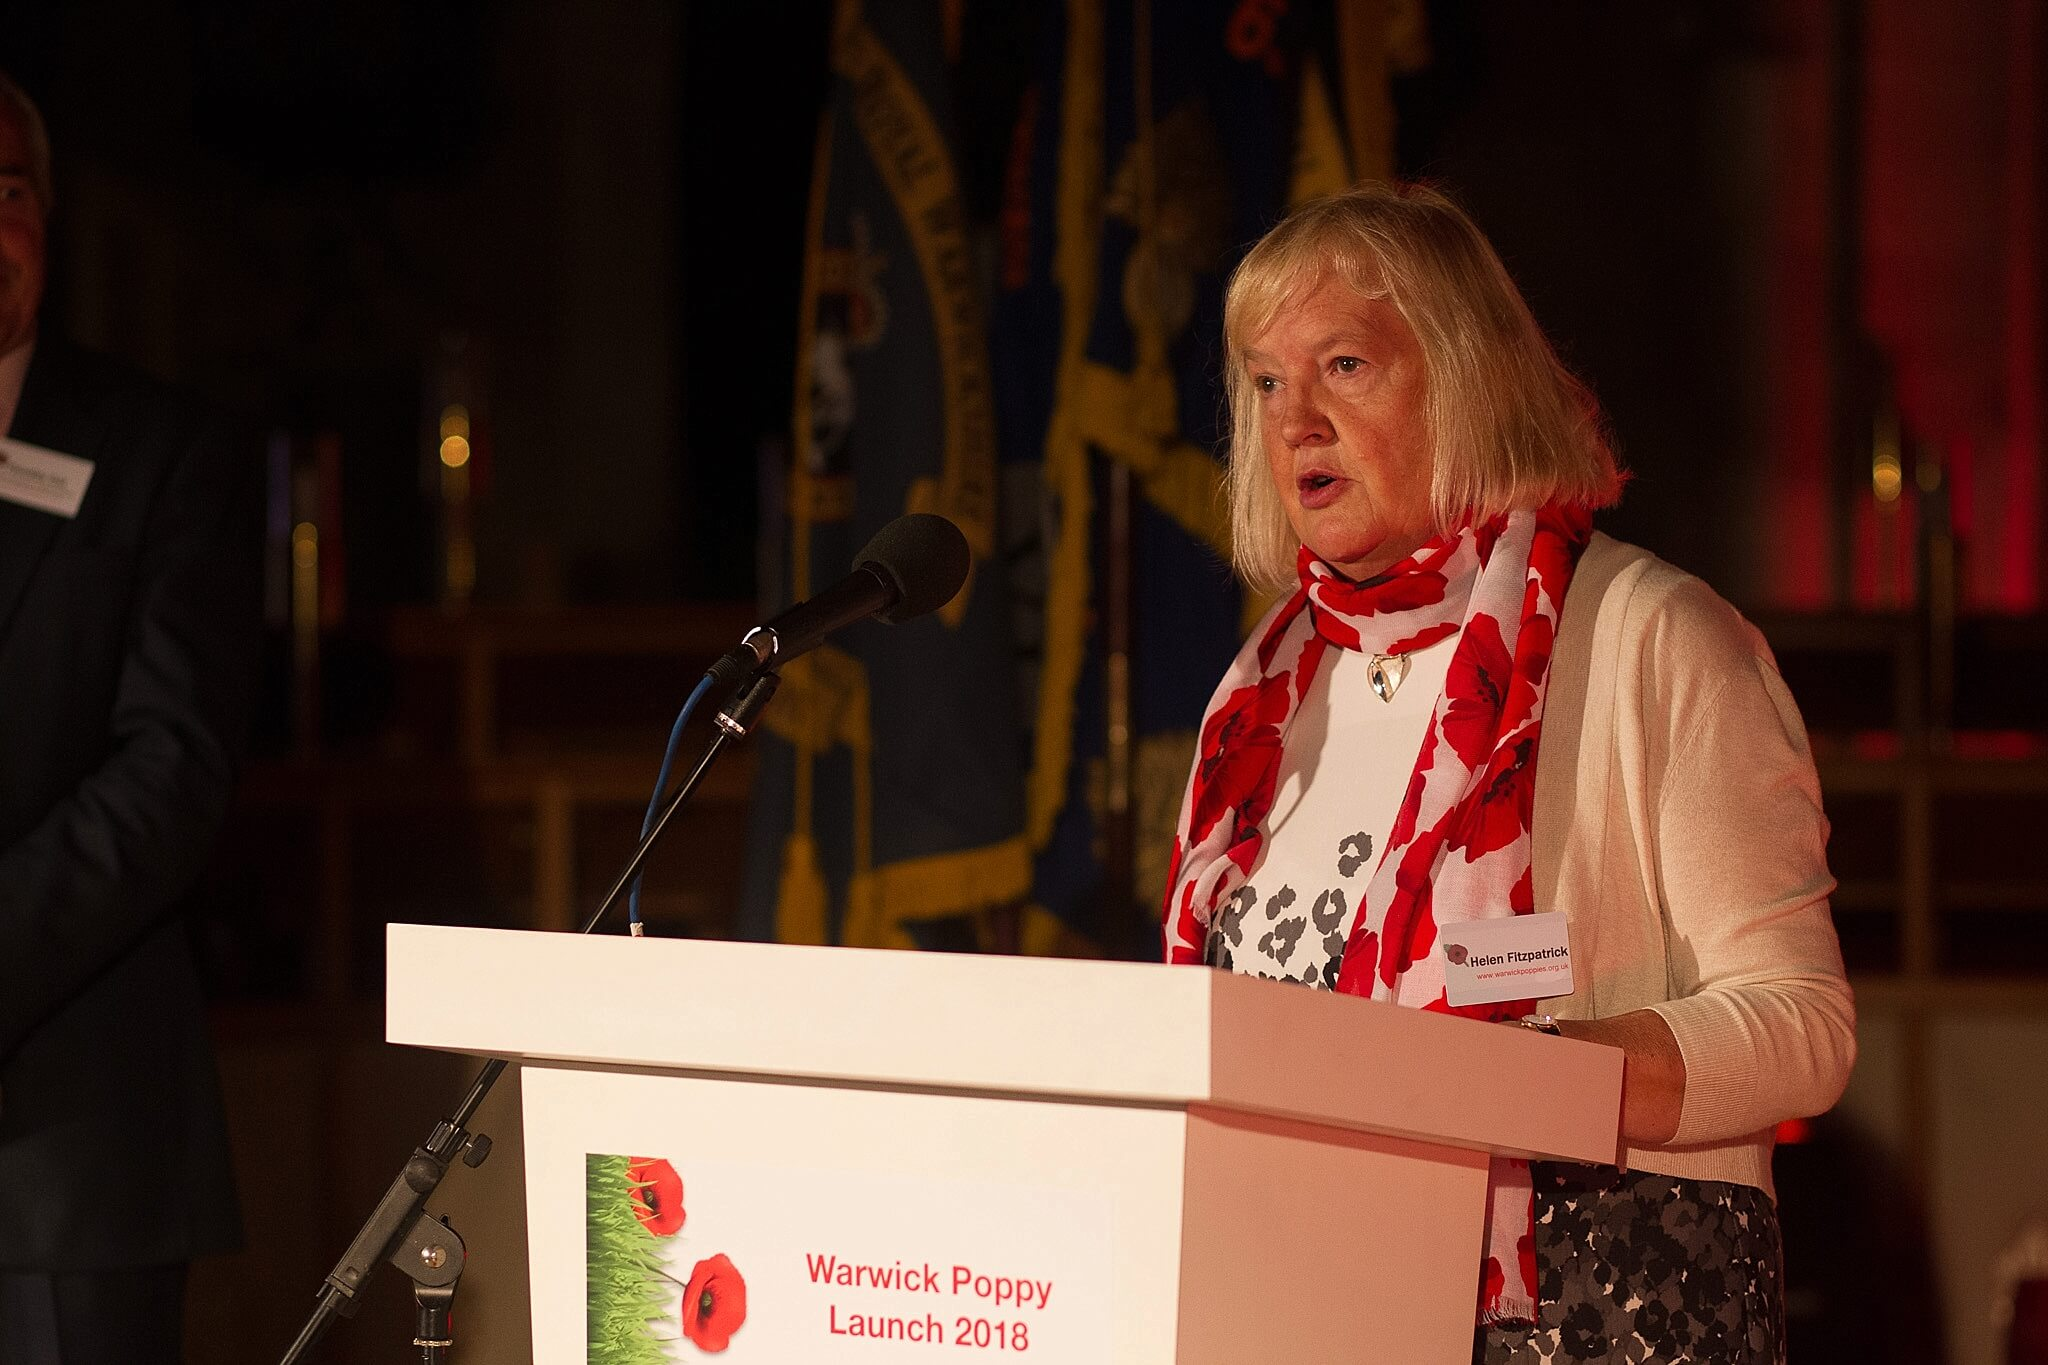 Warwick Poppies 2018 launch - Helen Fitzpatrick